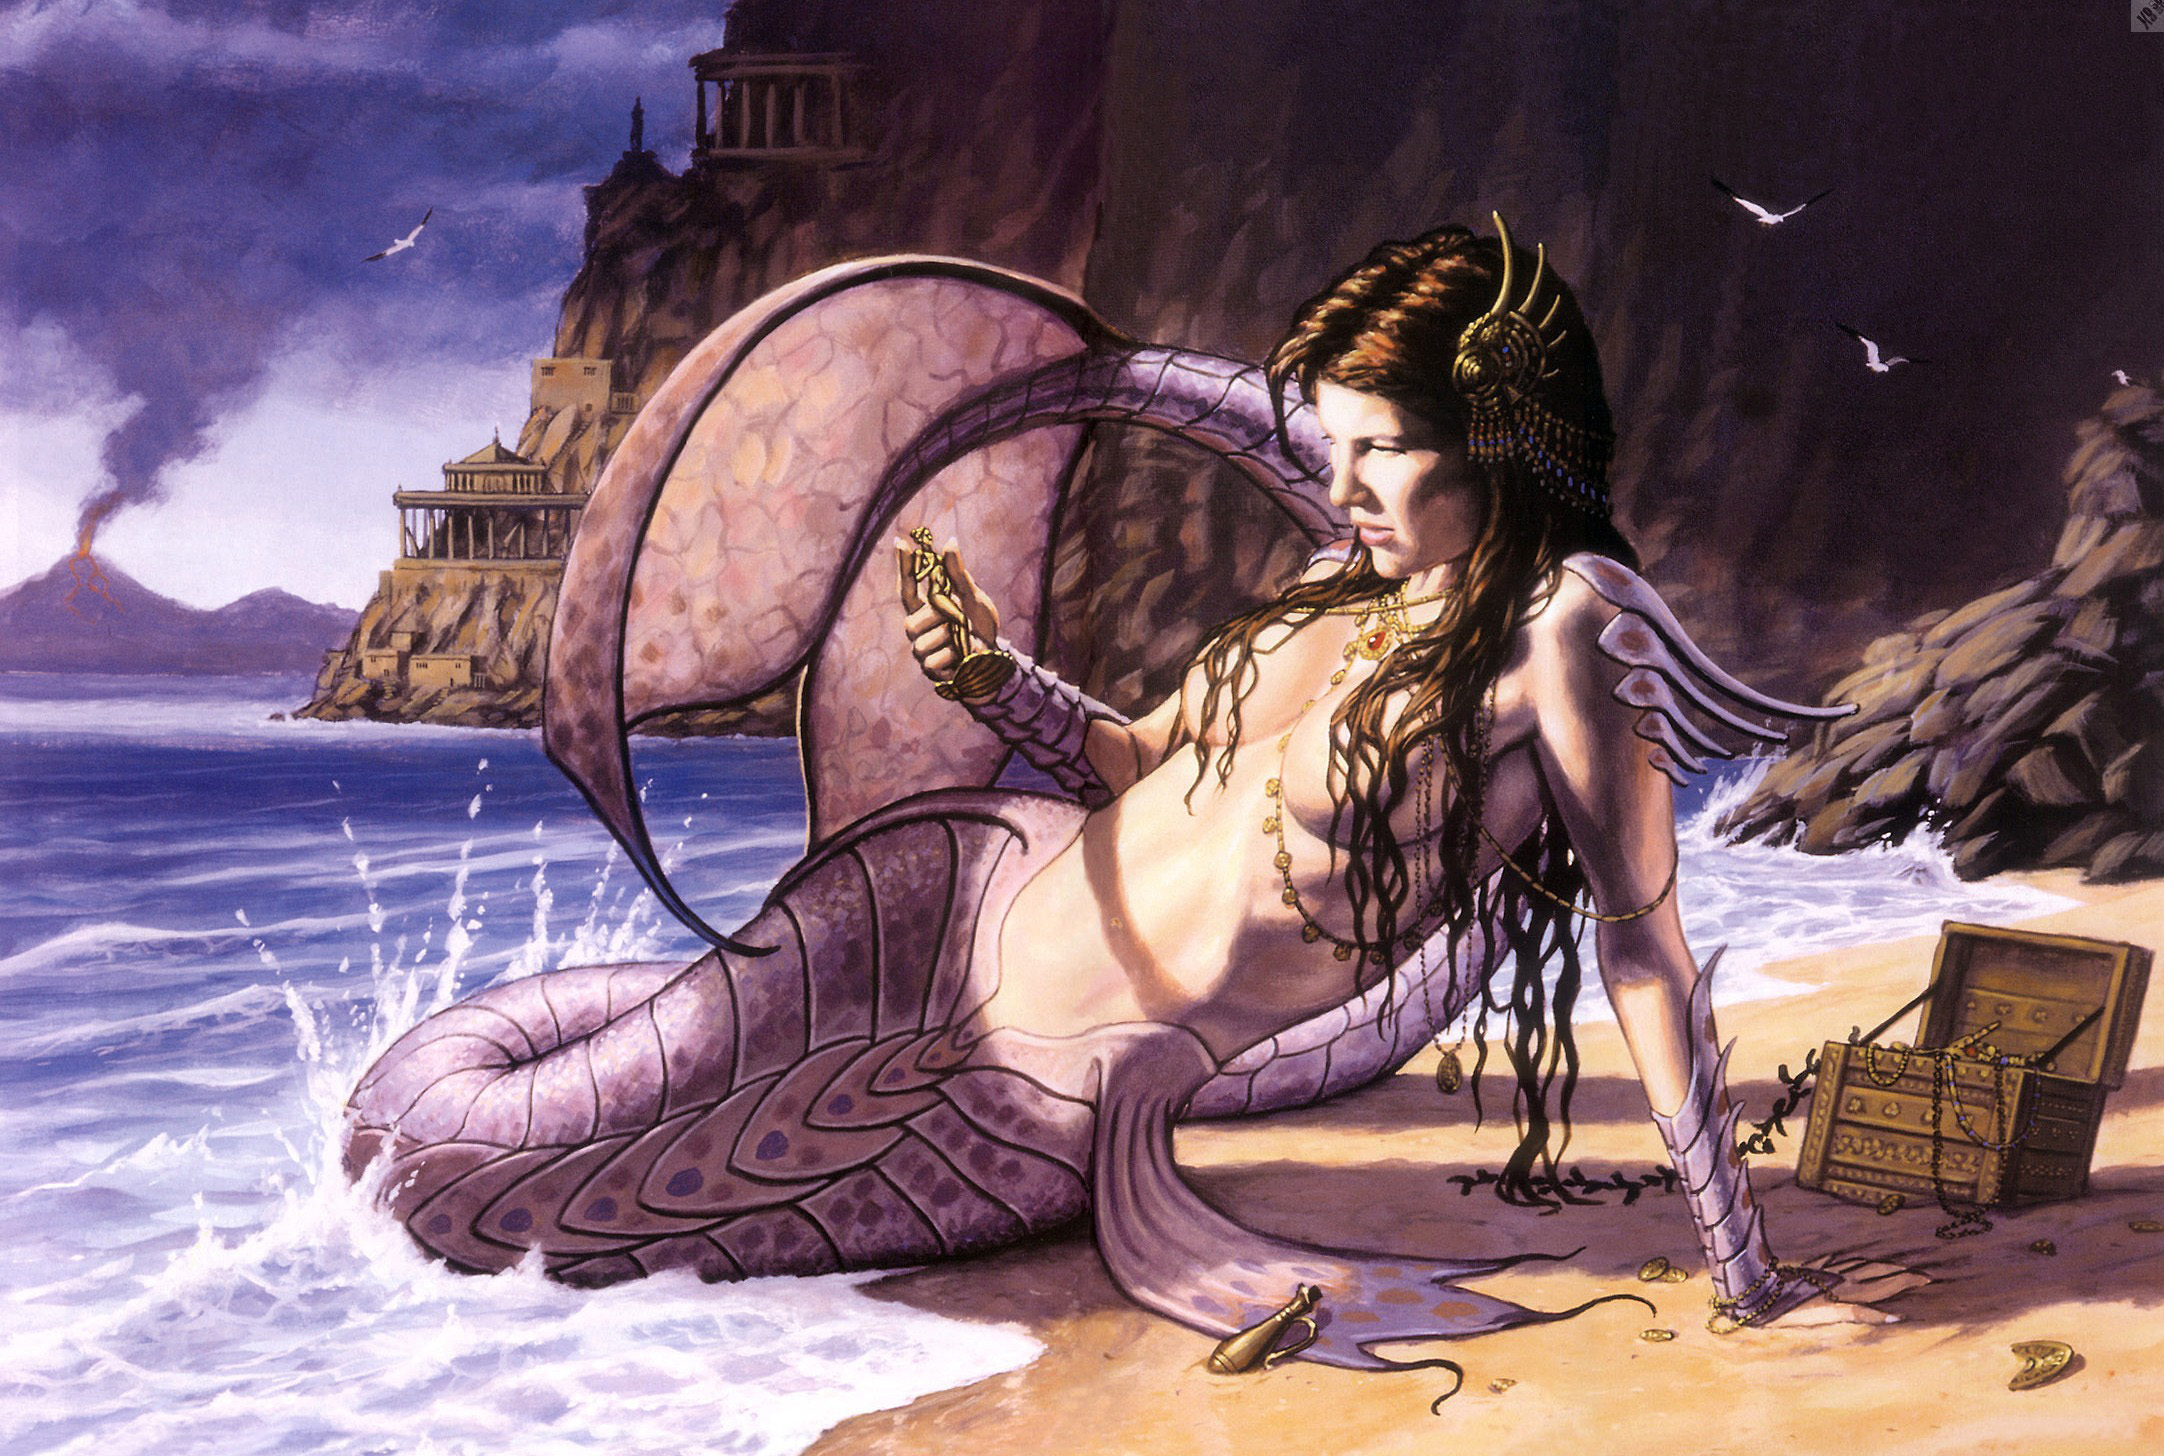 Porn mermaid picture porn video